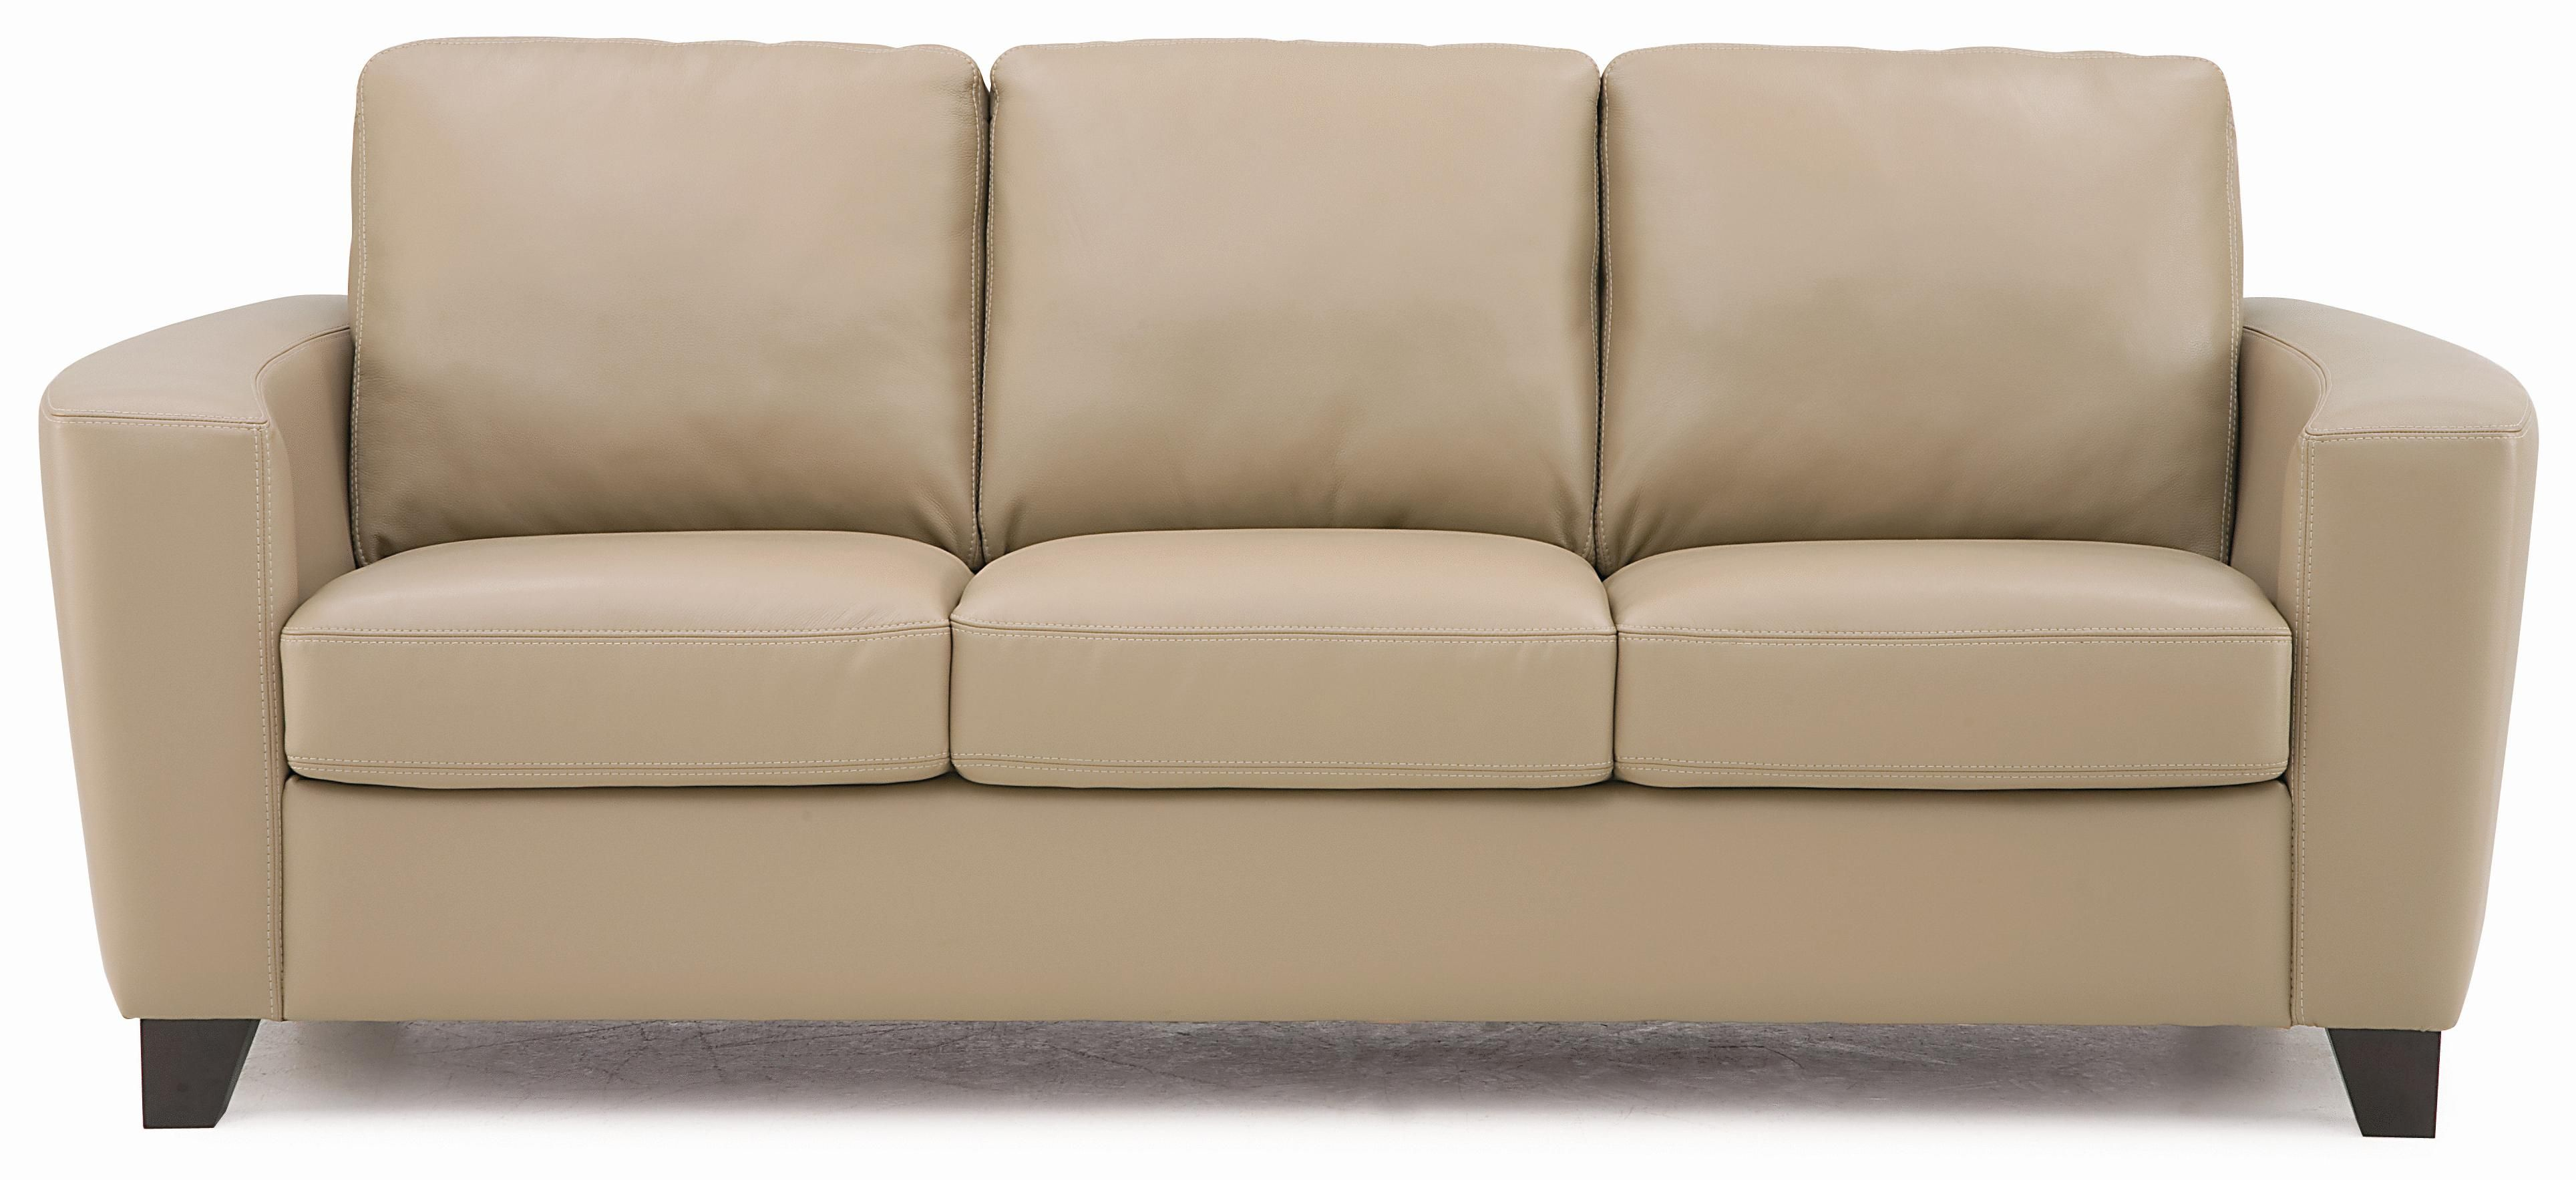 The Centerpiece For Your Living Room Or Entertainment Area Leeds Sofa From Palliser Brings Function And Fashion To Home